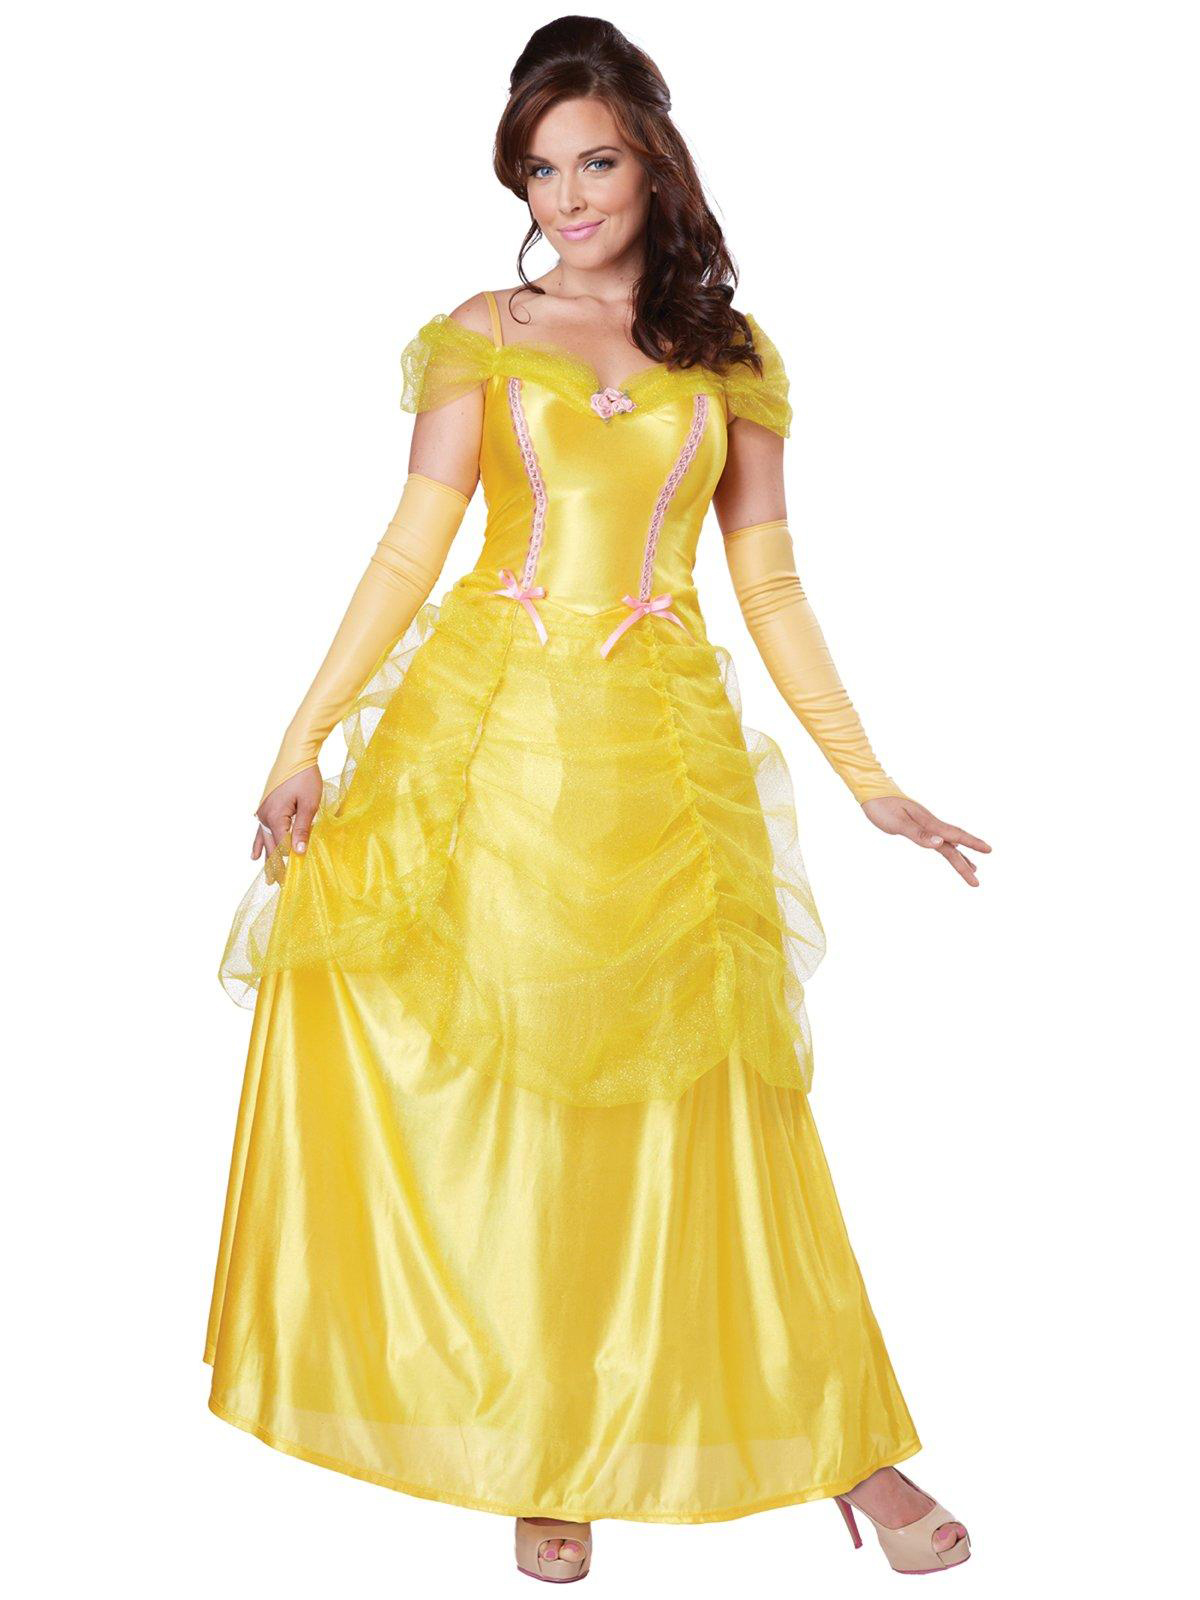 Belle Costume - Womens Dress